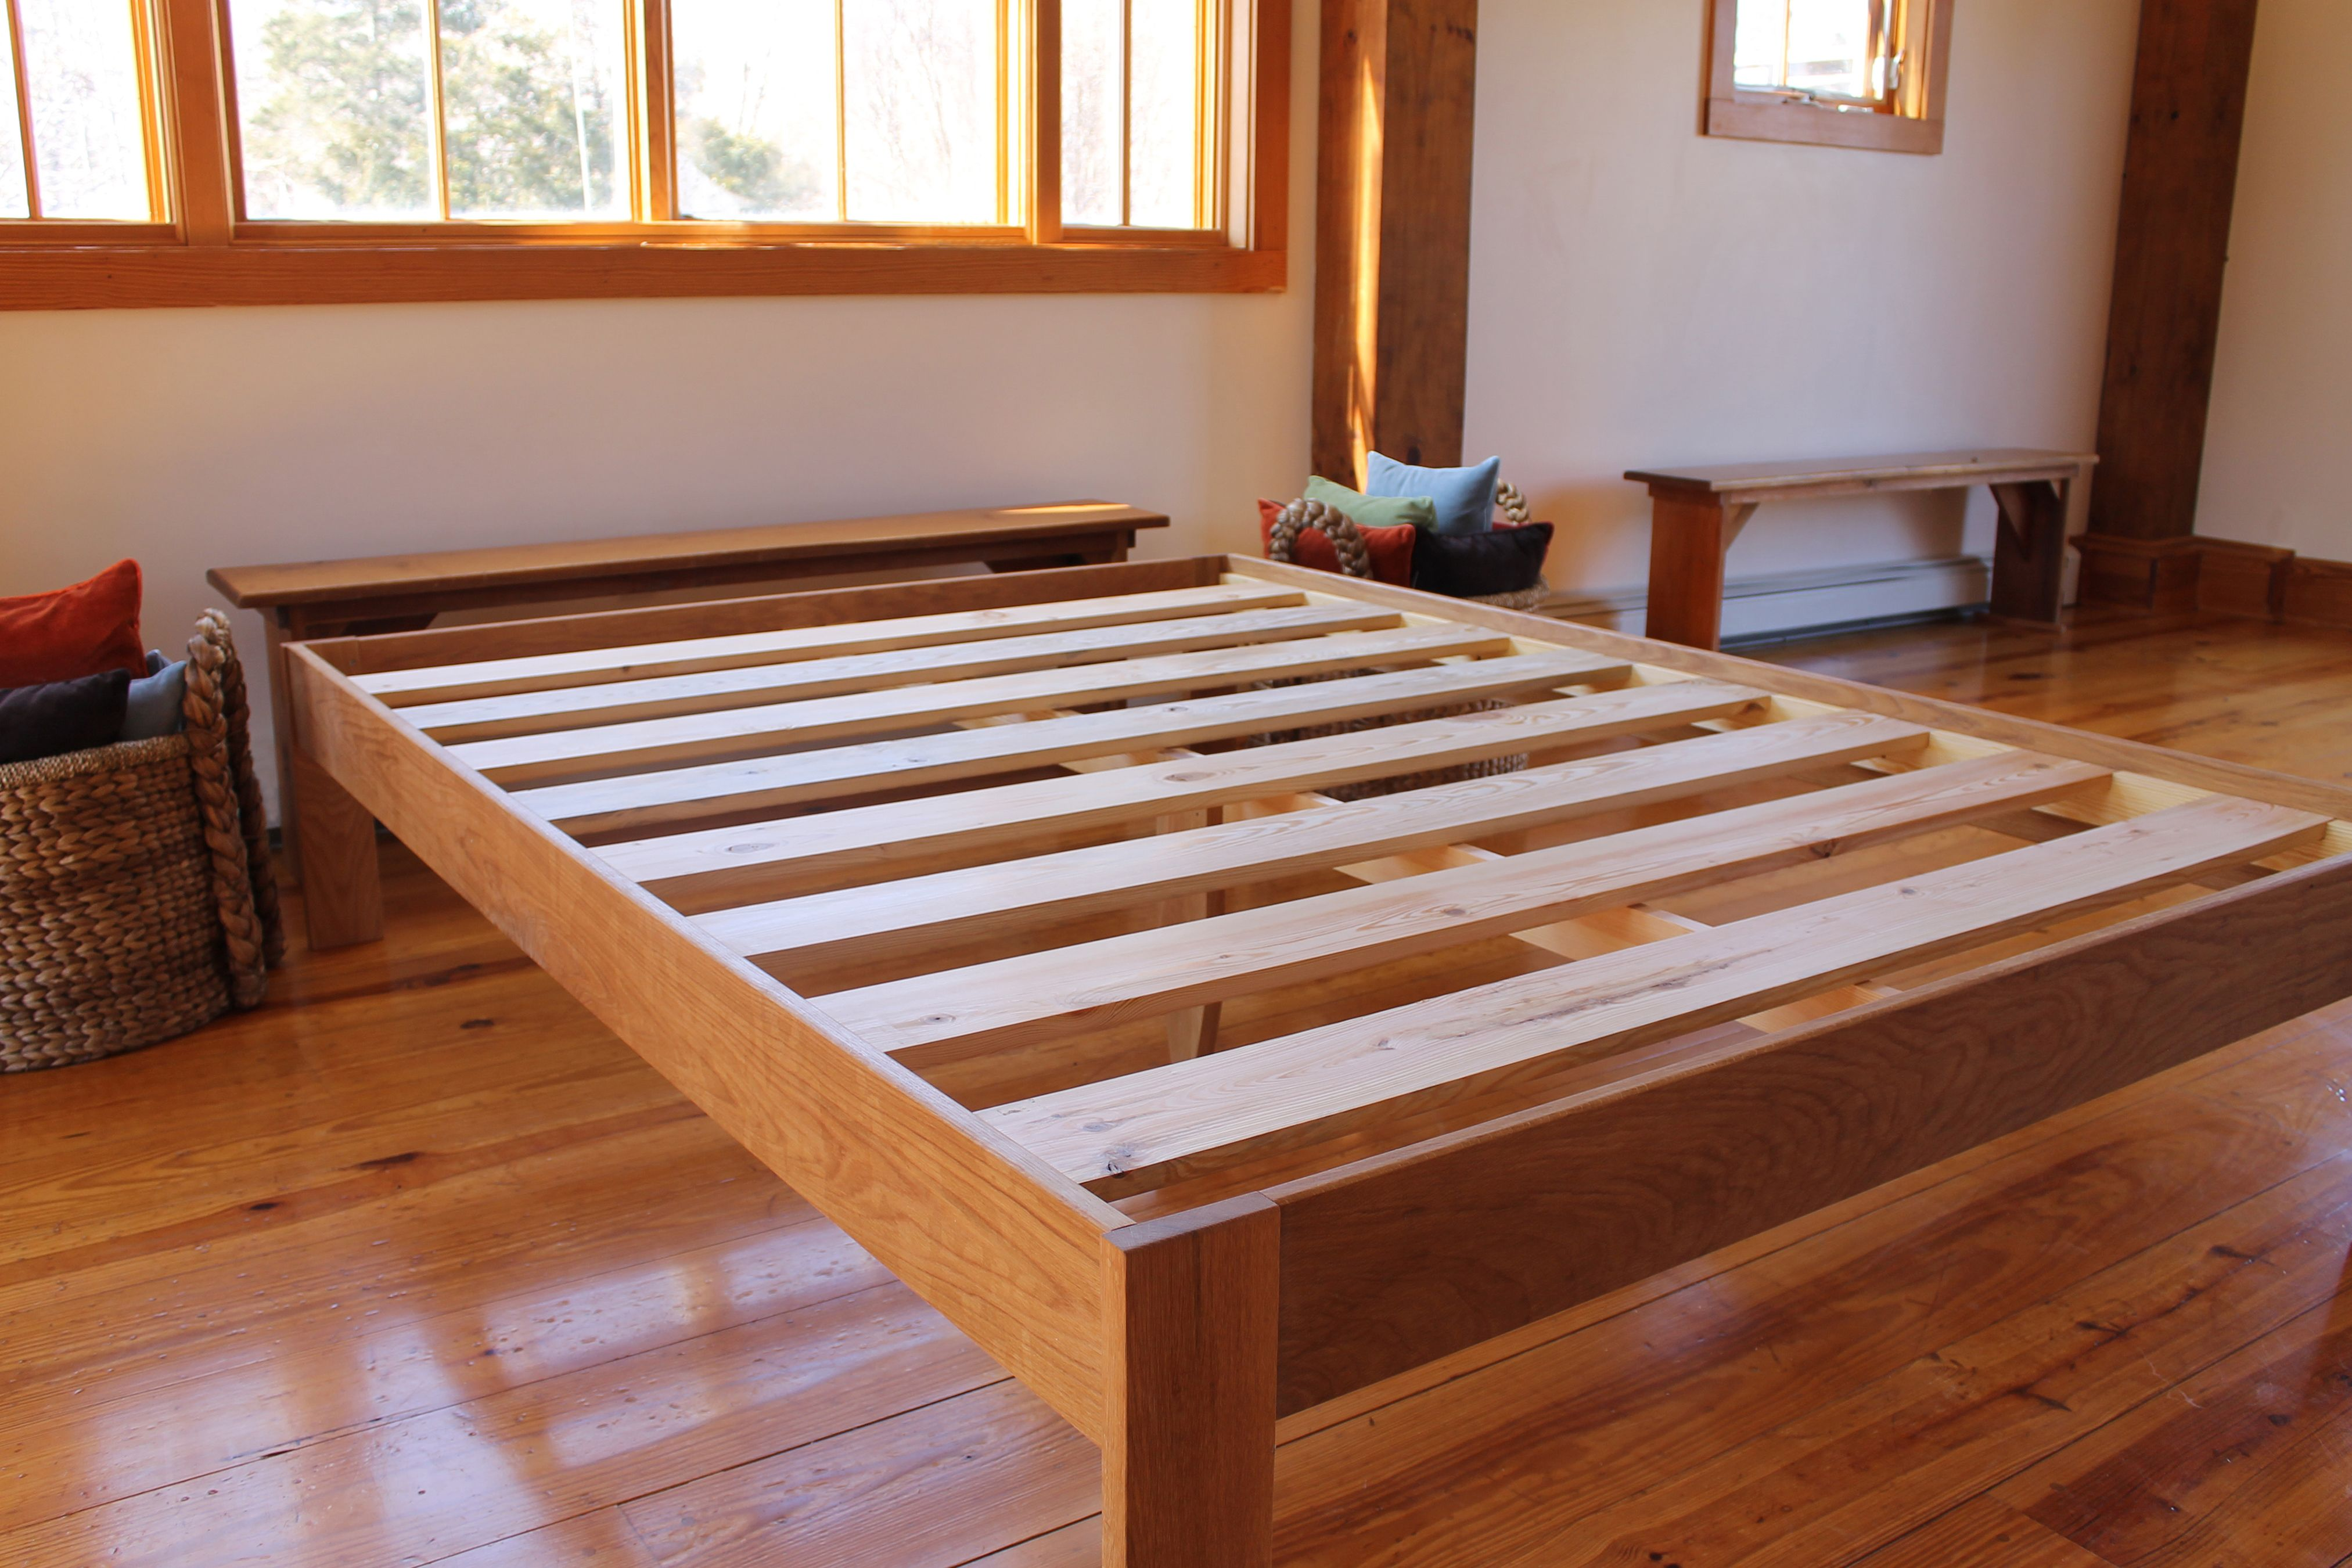 Savvy Rests Locally Manufactured Platform Bed, The Ivy, Supports Your Sleep